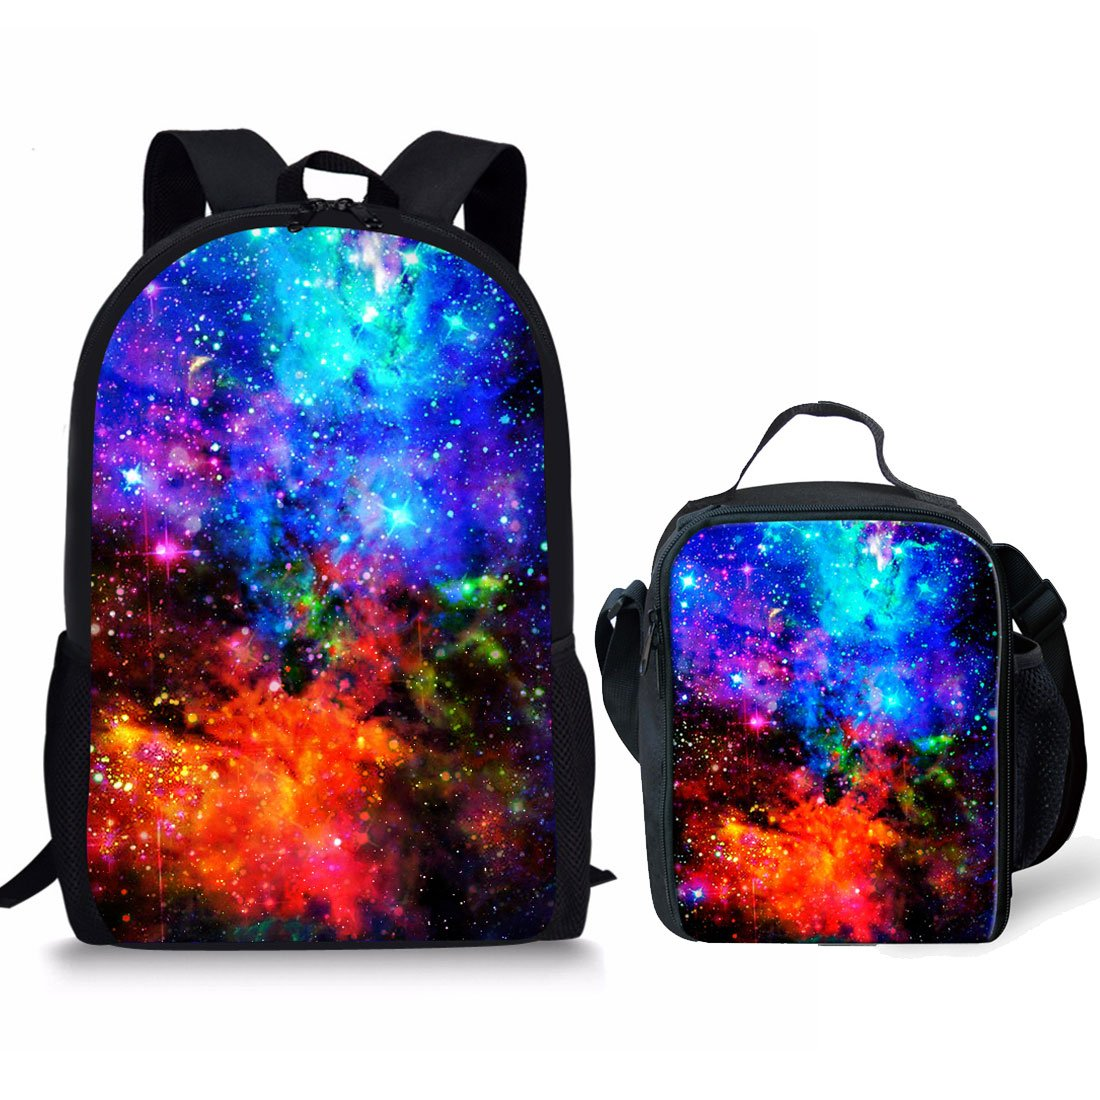 showudesignsカラフルWarmer Lunchバッグwith Galaxy印刷for Children Kids S  color 3 set B07FKLGF1J